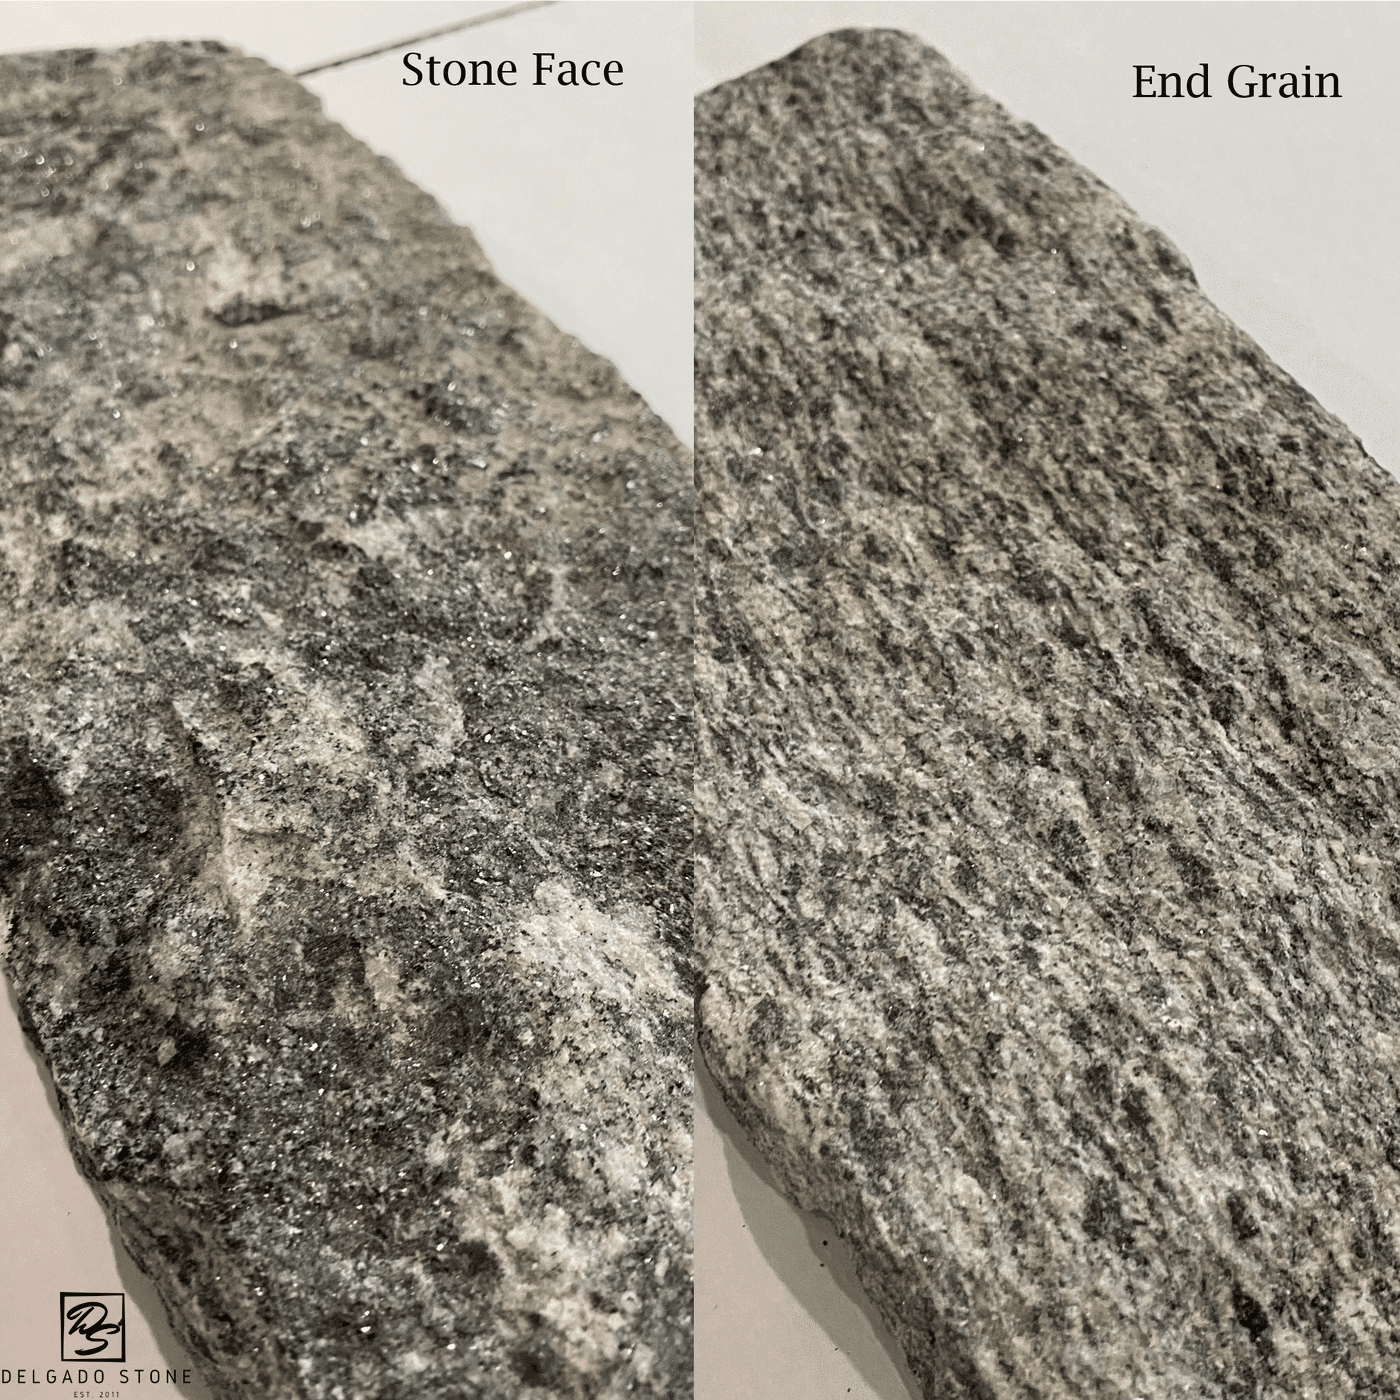 Close Up Stone Face compared to End Grain